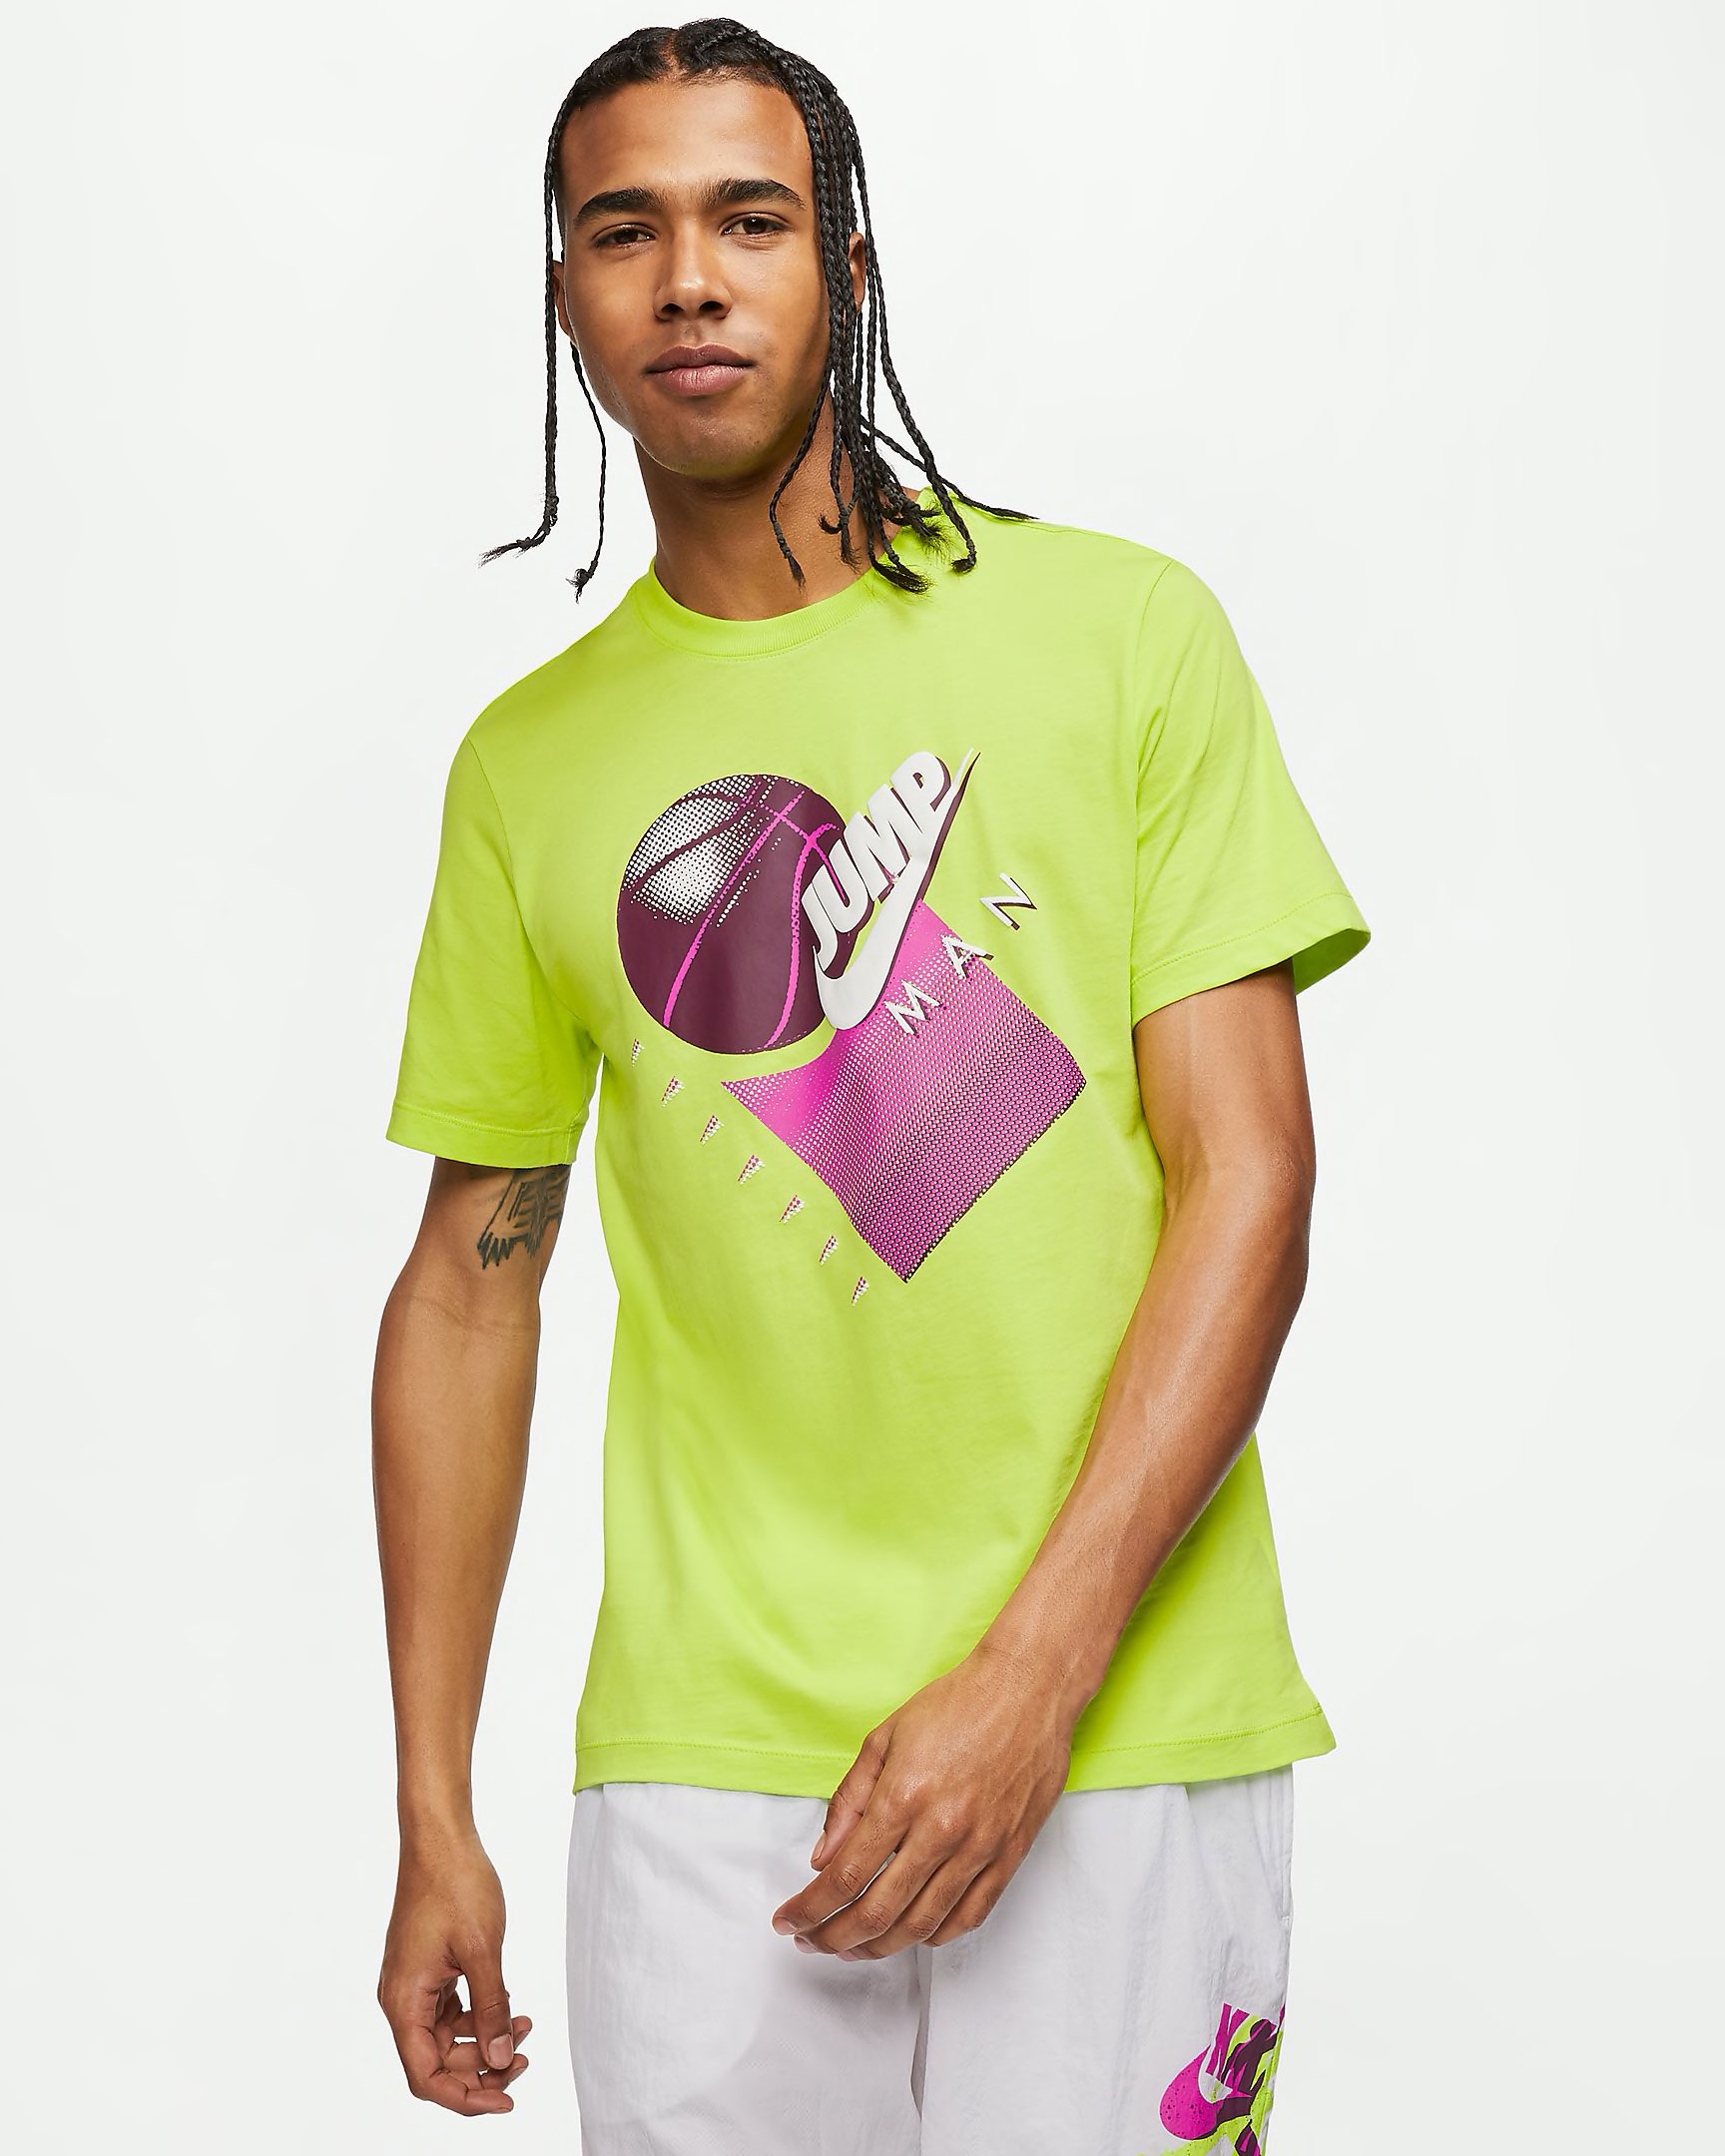 neon-jordan-4-air-max-95-shirt-match